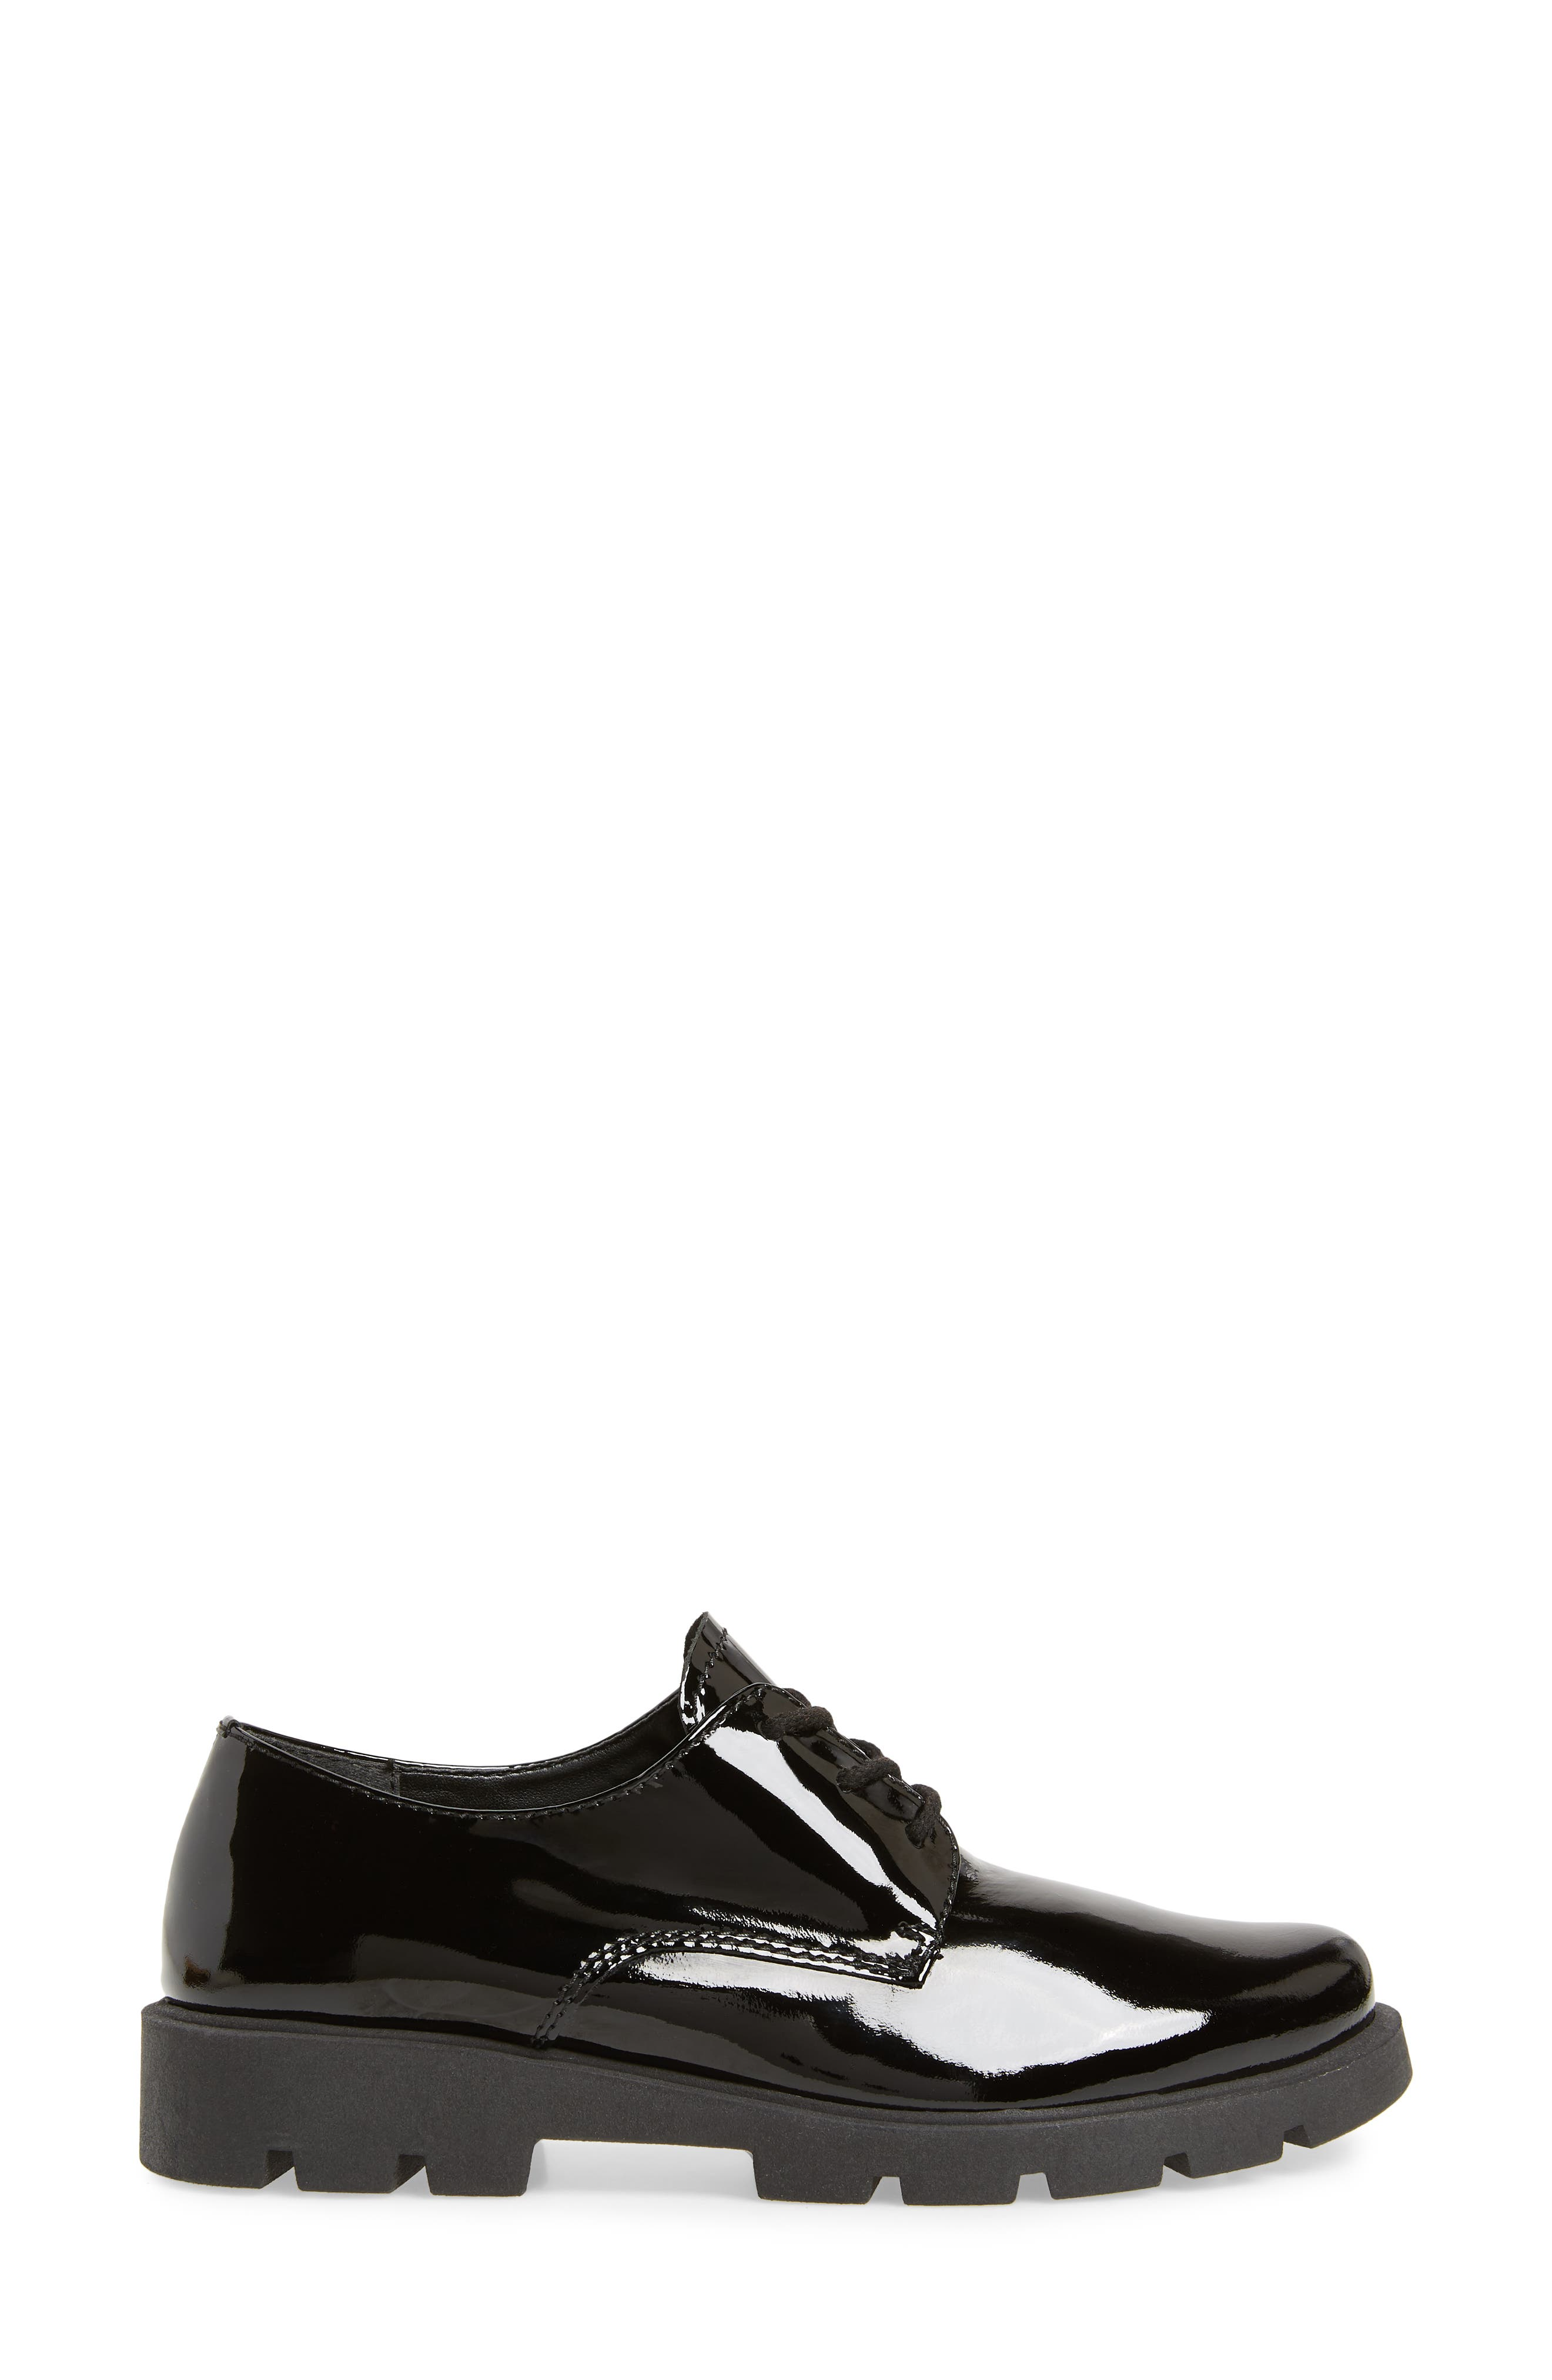 People Mover Derby,                             Alternate thumbnail 3, color,                             BLACK PATENT LEATHER